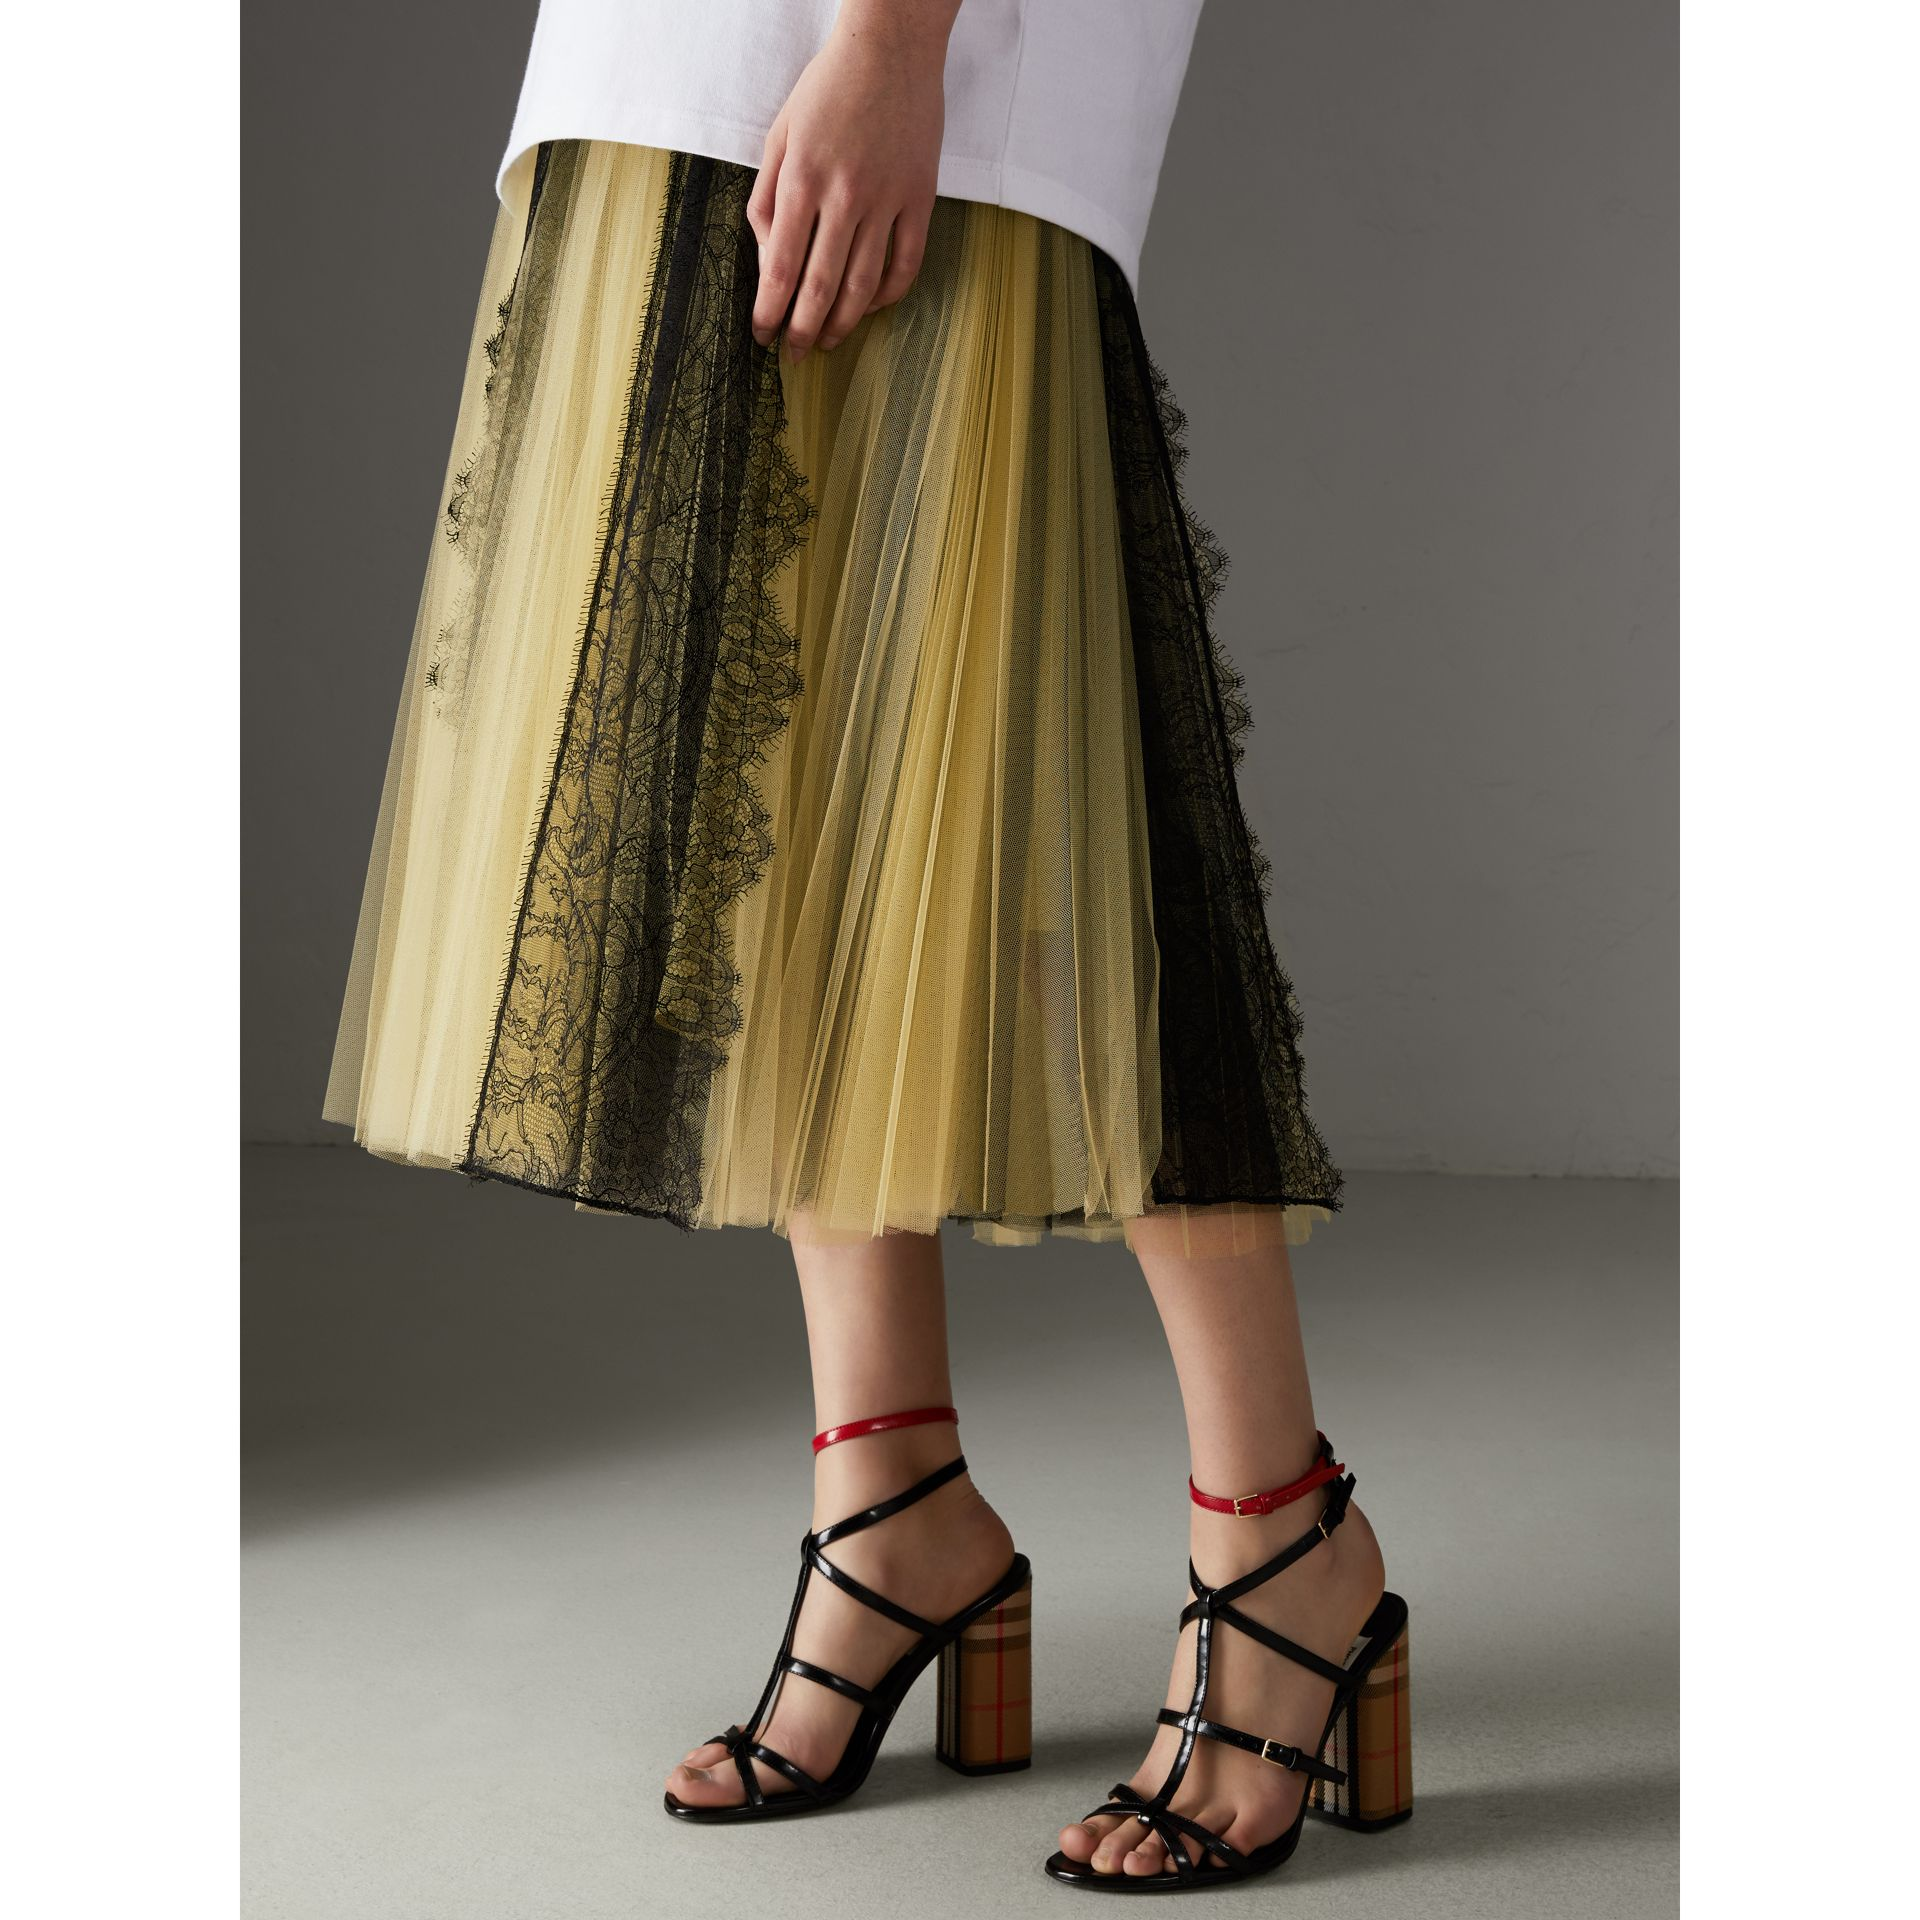 Lace Panel Pleated Tulle Skirt in Yellow - Women | Burberry - gallery image 4